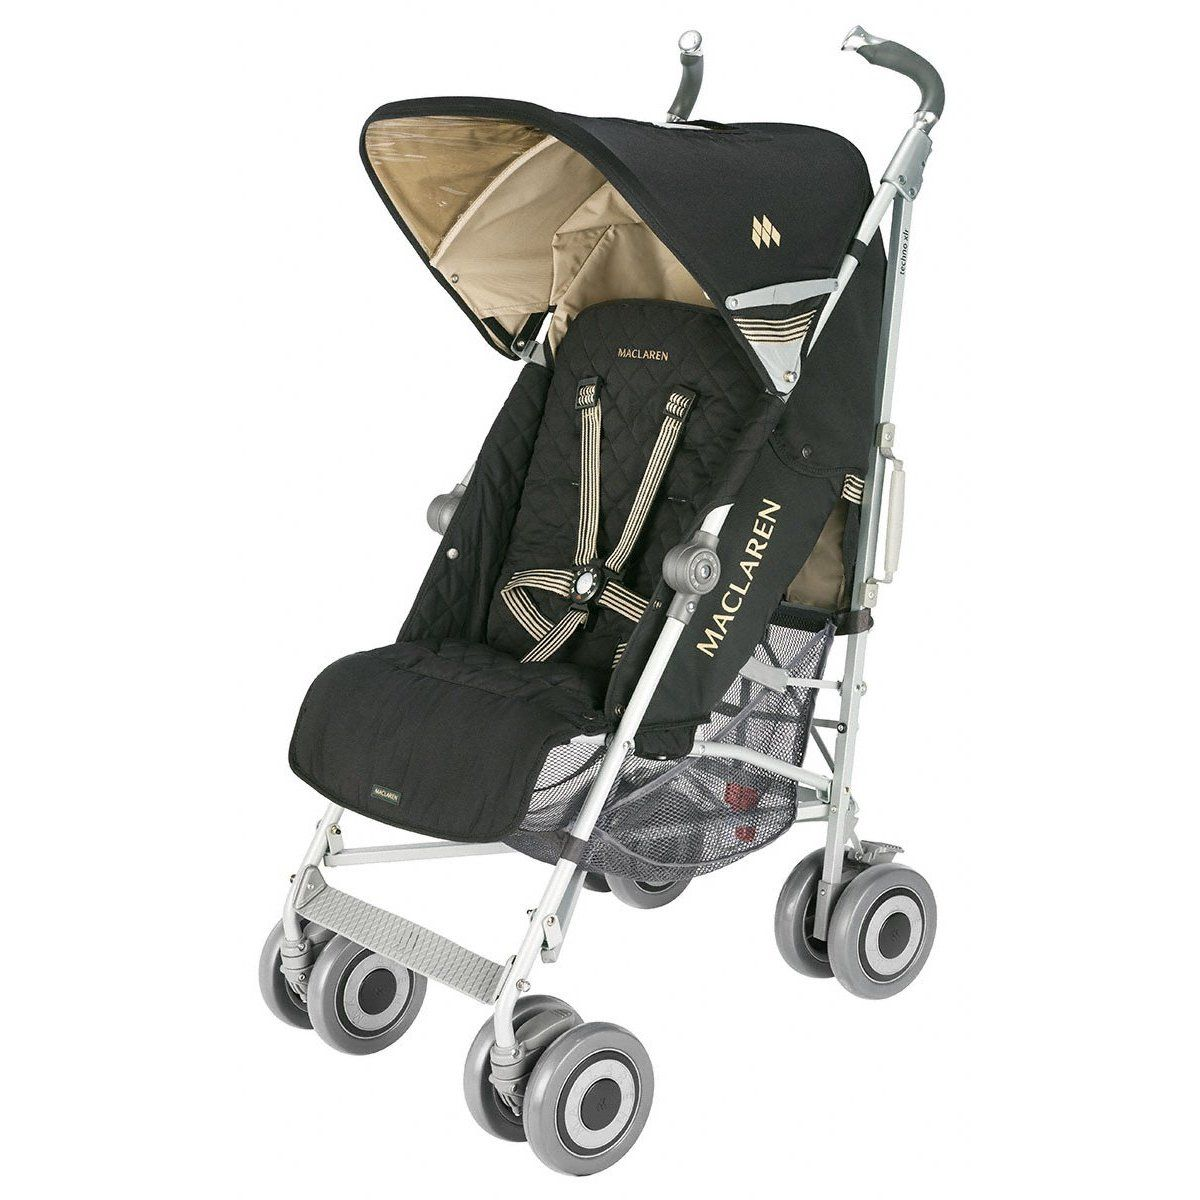 Maclaren XLR (With images) Stroller, Baby strollers